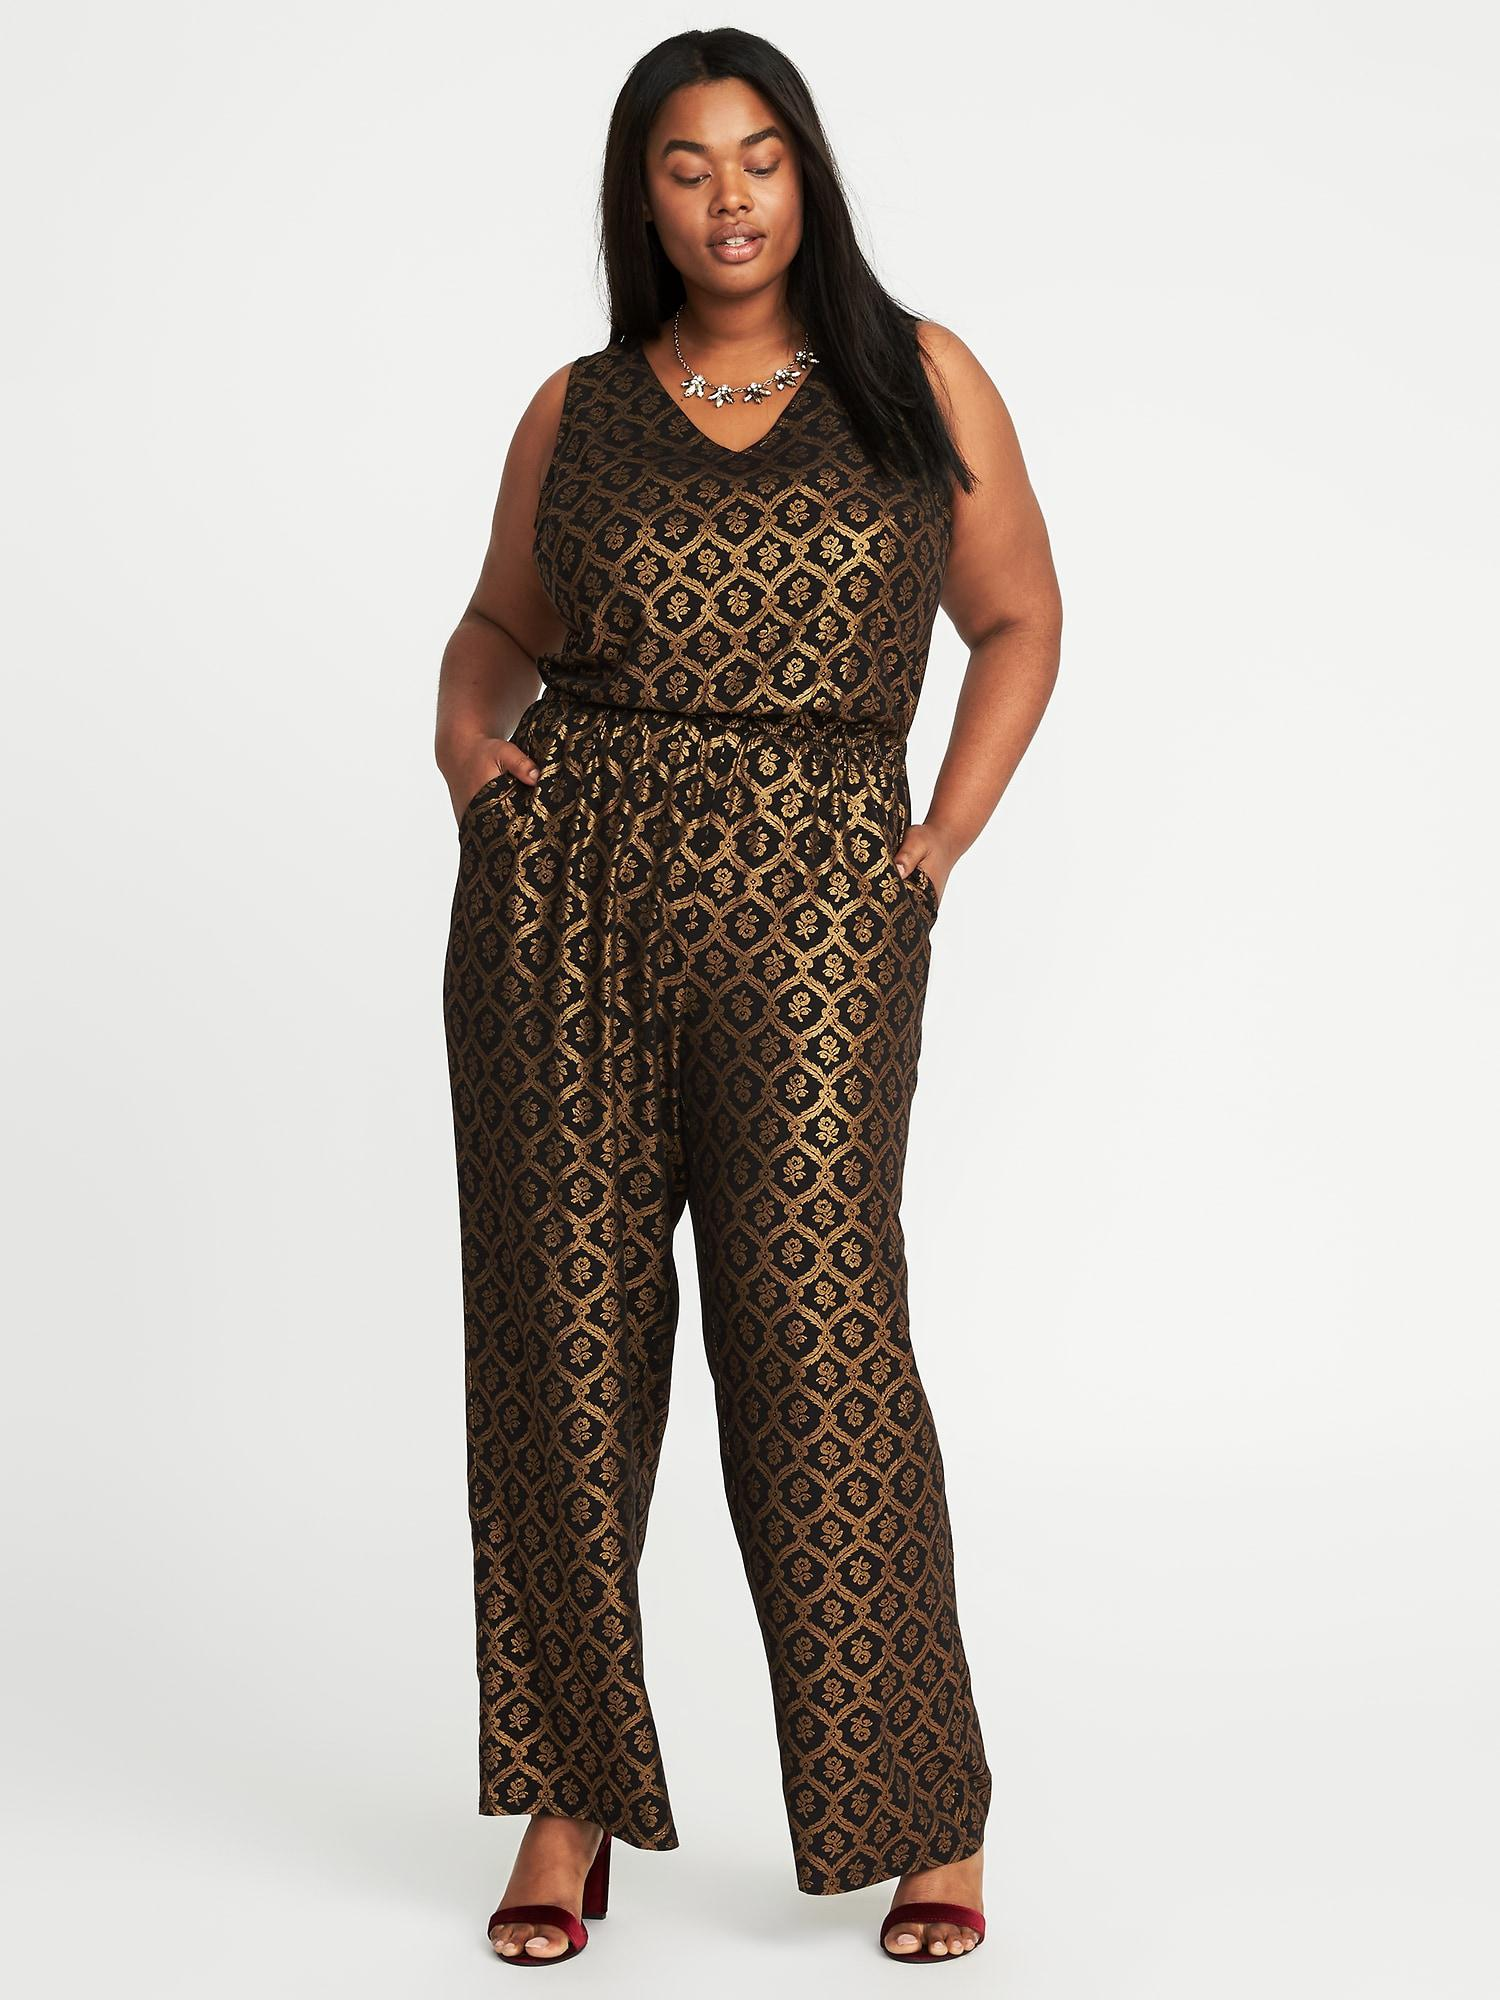 907f5f2d5107 Lyst - Old Navy Plus-size Sleeveless Jumpsuit in Black